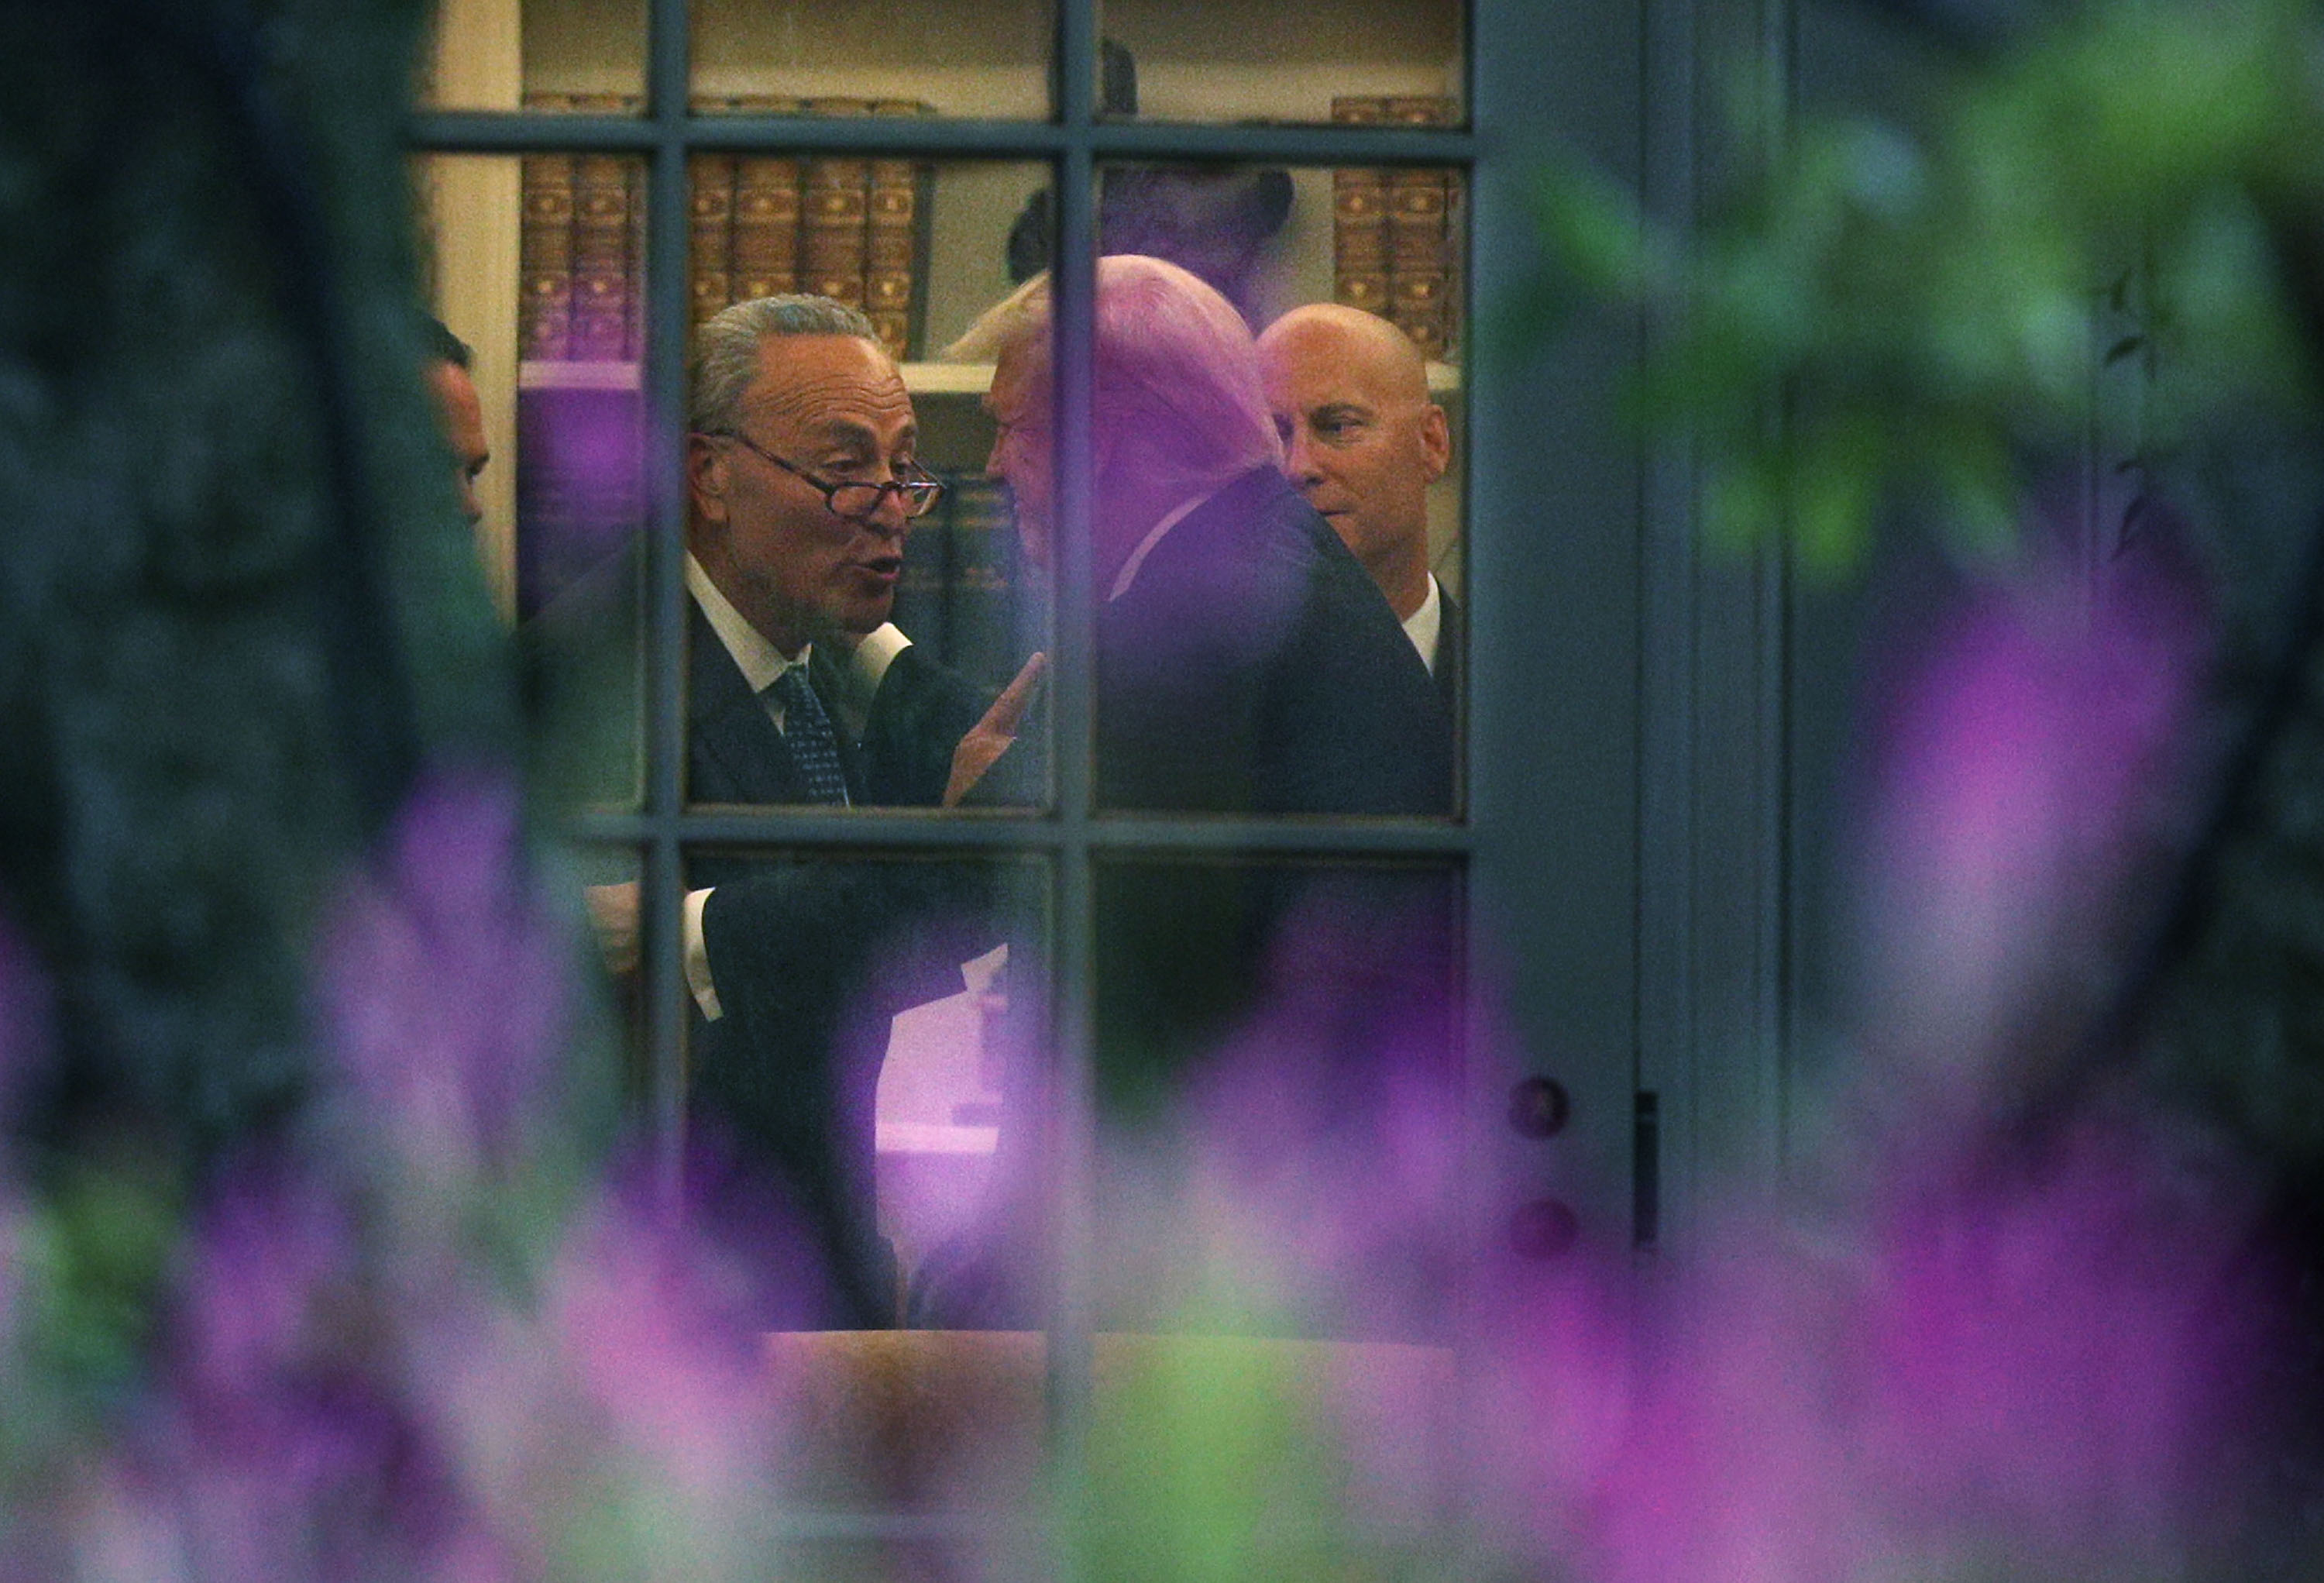 U.S. Senate Minority Leader Chuck Schumer (D-NY) (L) makes a point to President Donald Trump in the Oval Office prior to his departure from the White House September 6, 2017 in Washington, D.C.